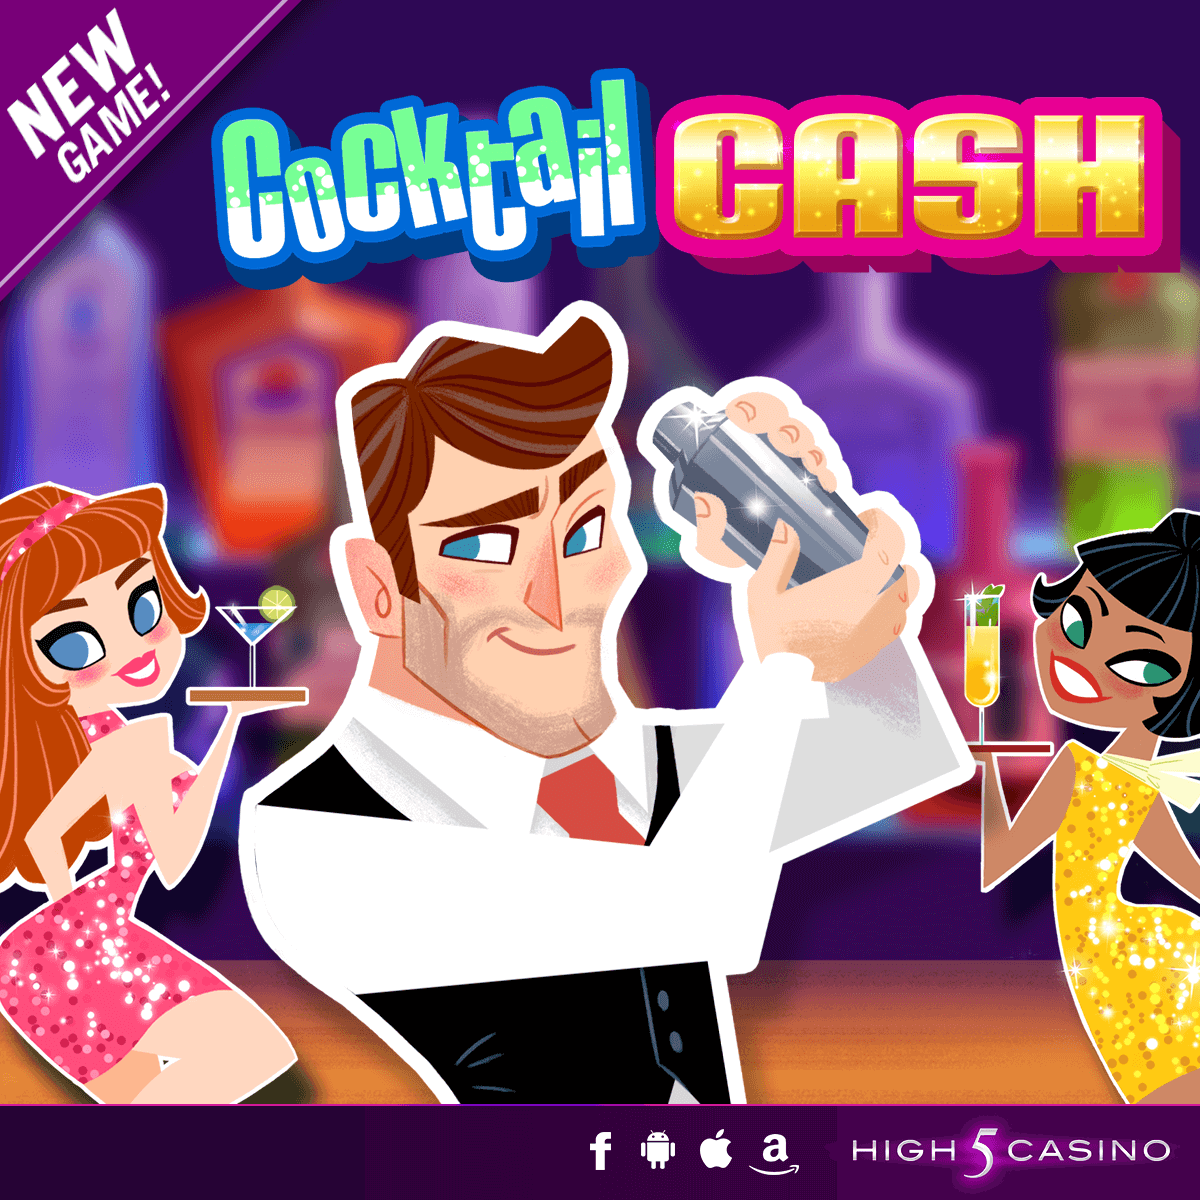 Cocktail Cash Review